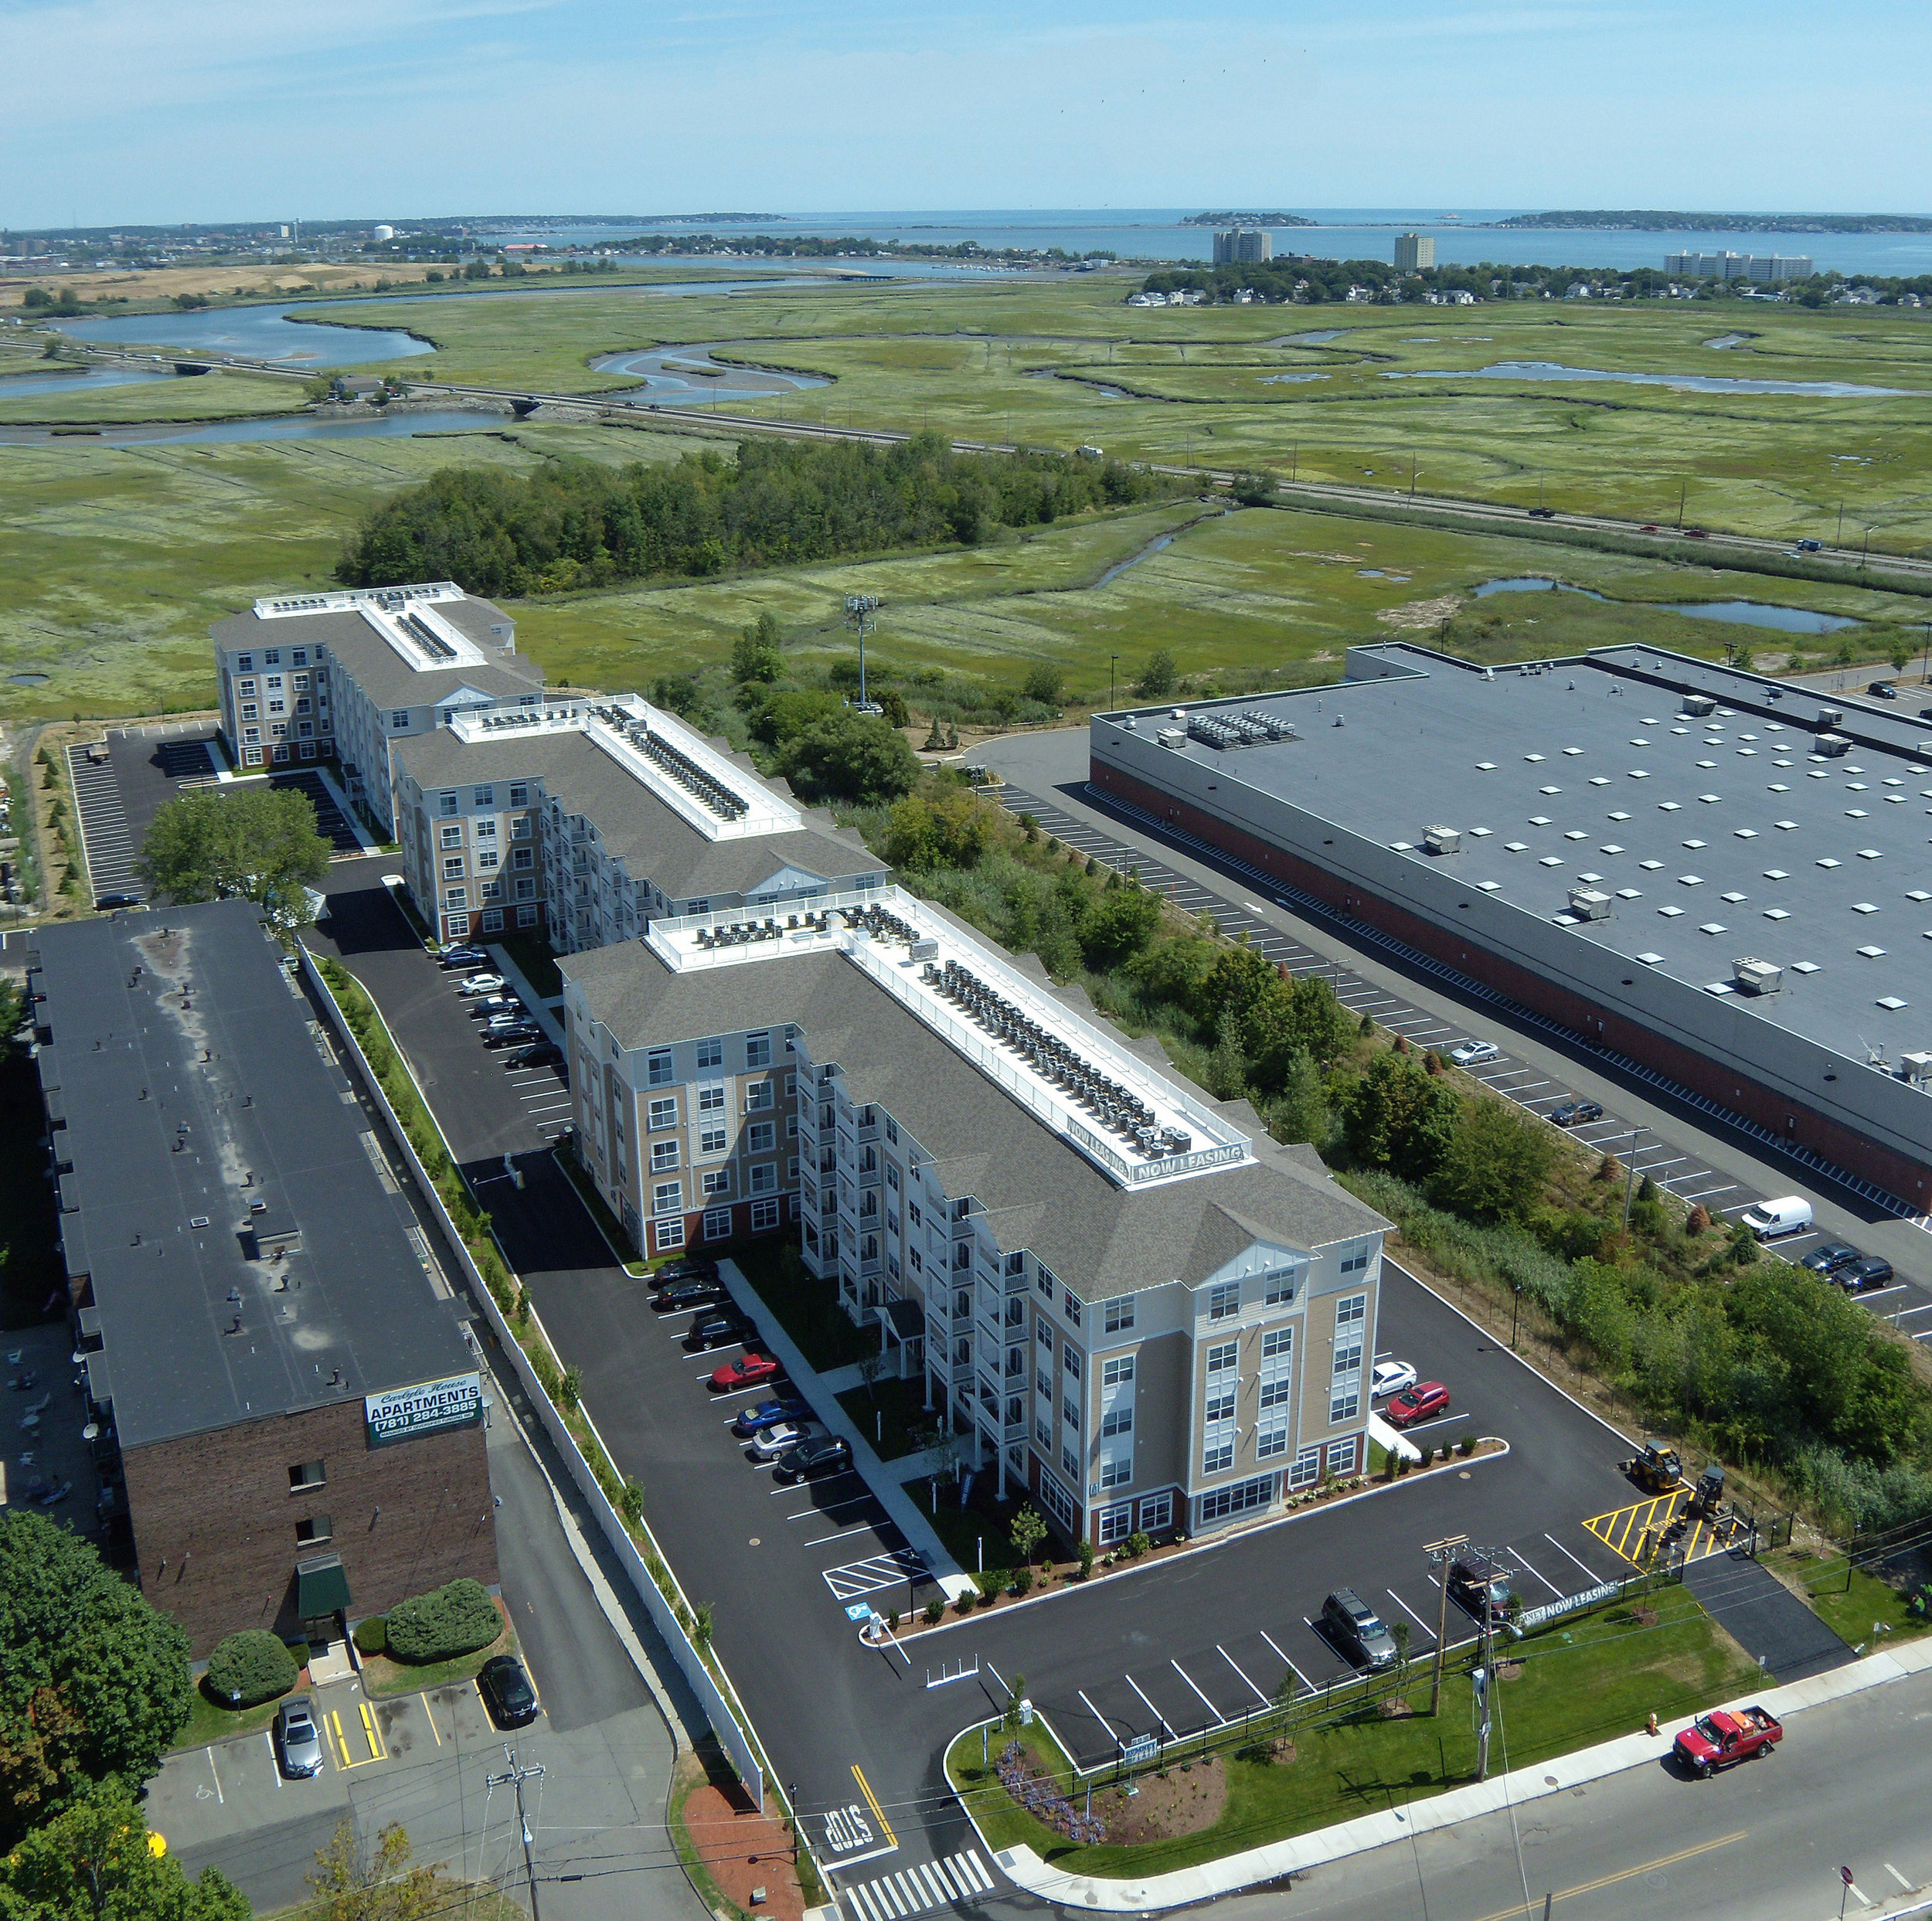 Rumney-Flats-Aerial-View-2-HDS-Architecture.jpg